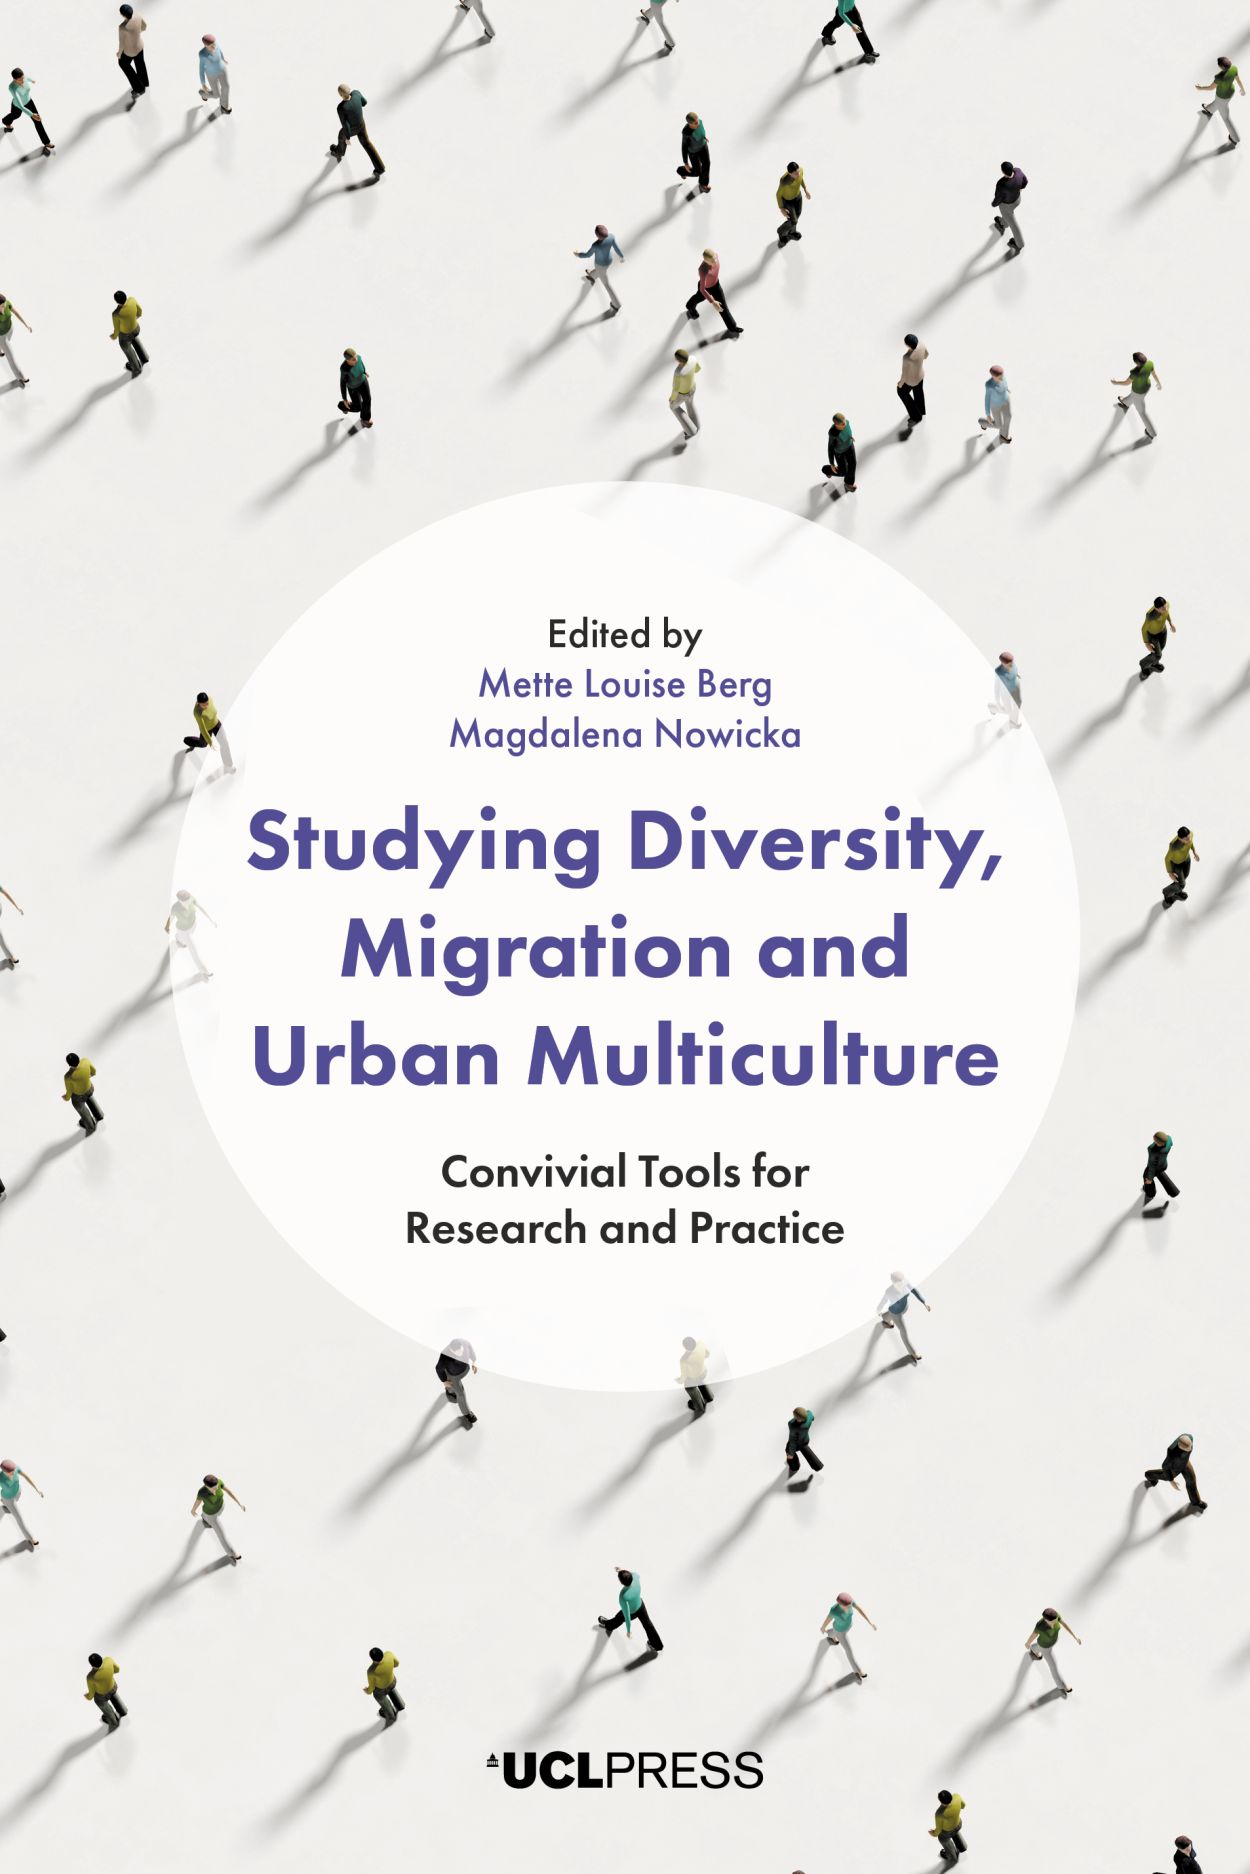 Studying Diversity, Migration and Urban Multiculture: Convivial Tools for Research and Practice